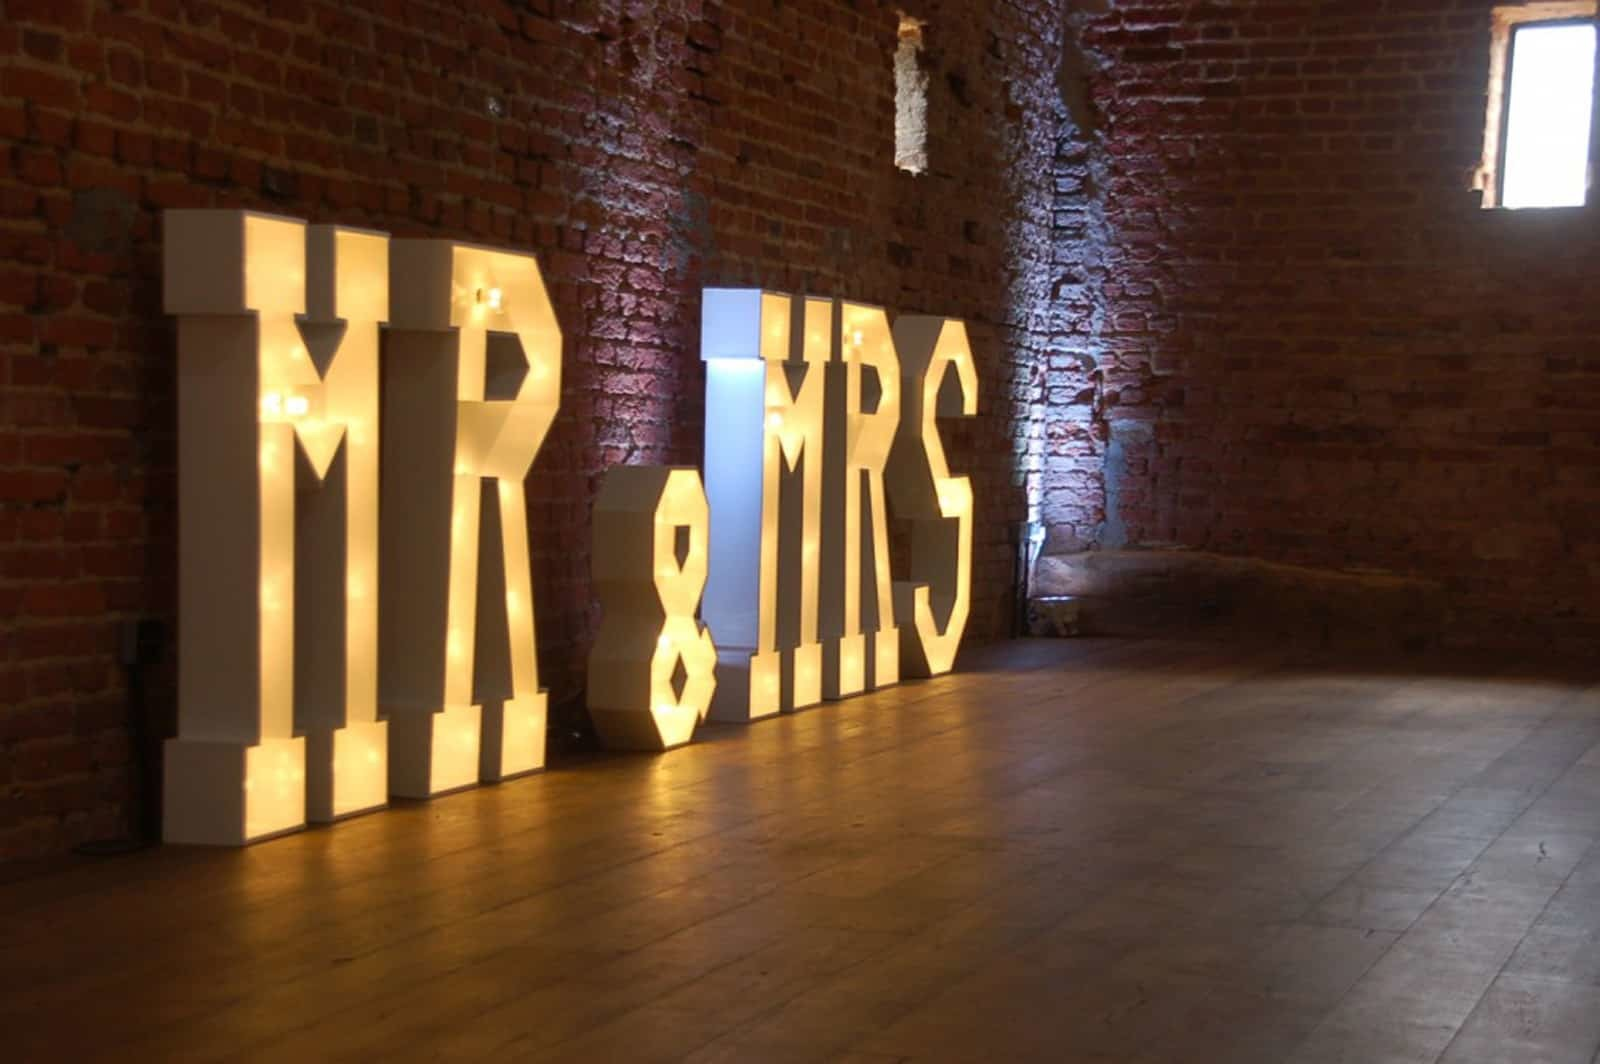 Mr & Mrs in lights